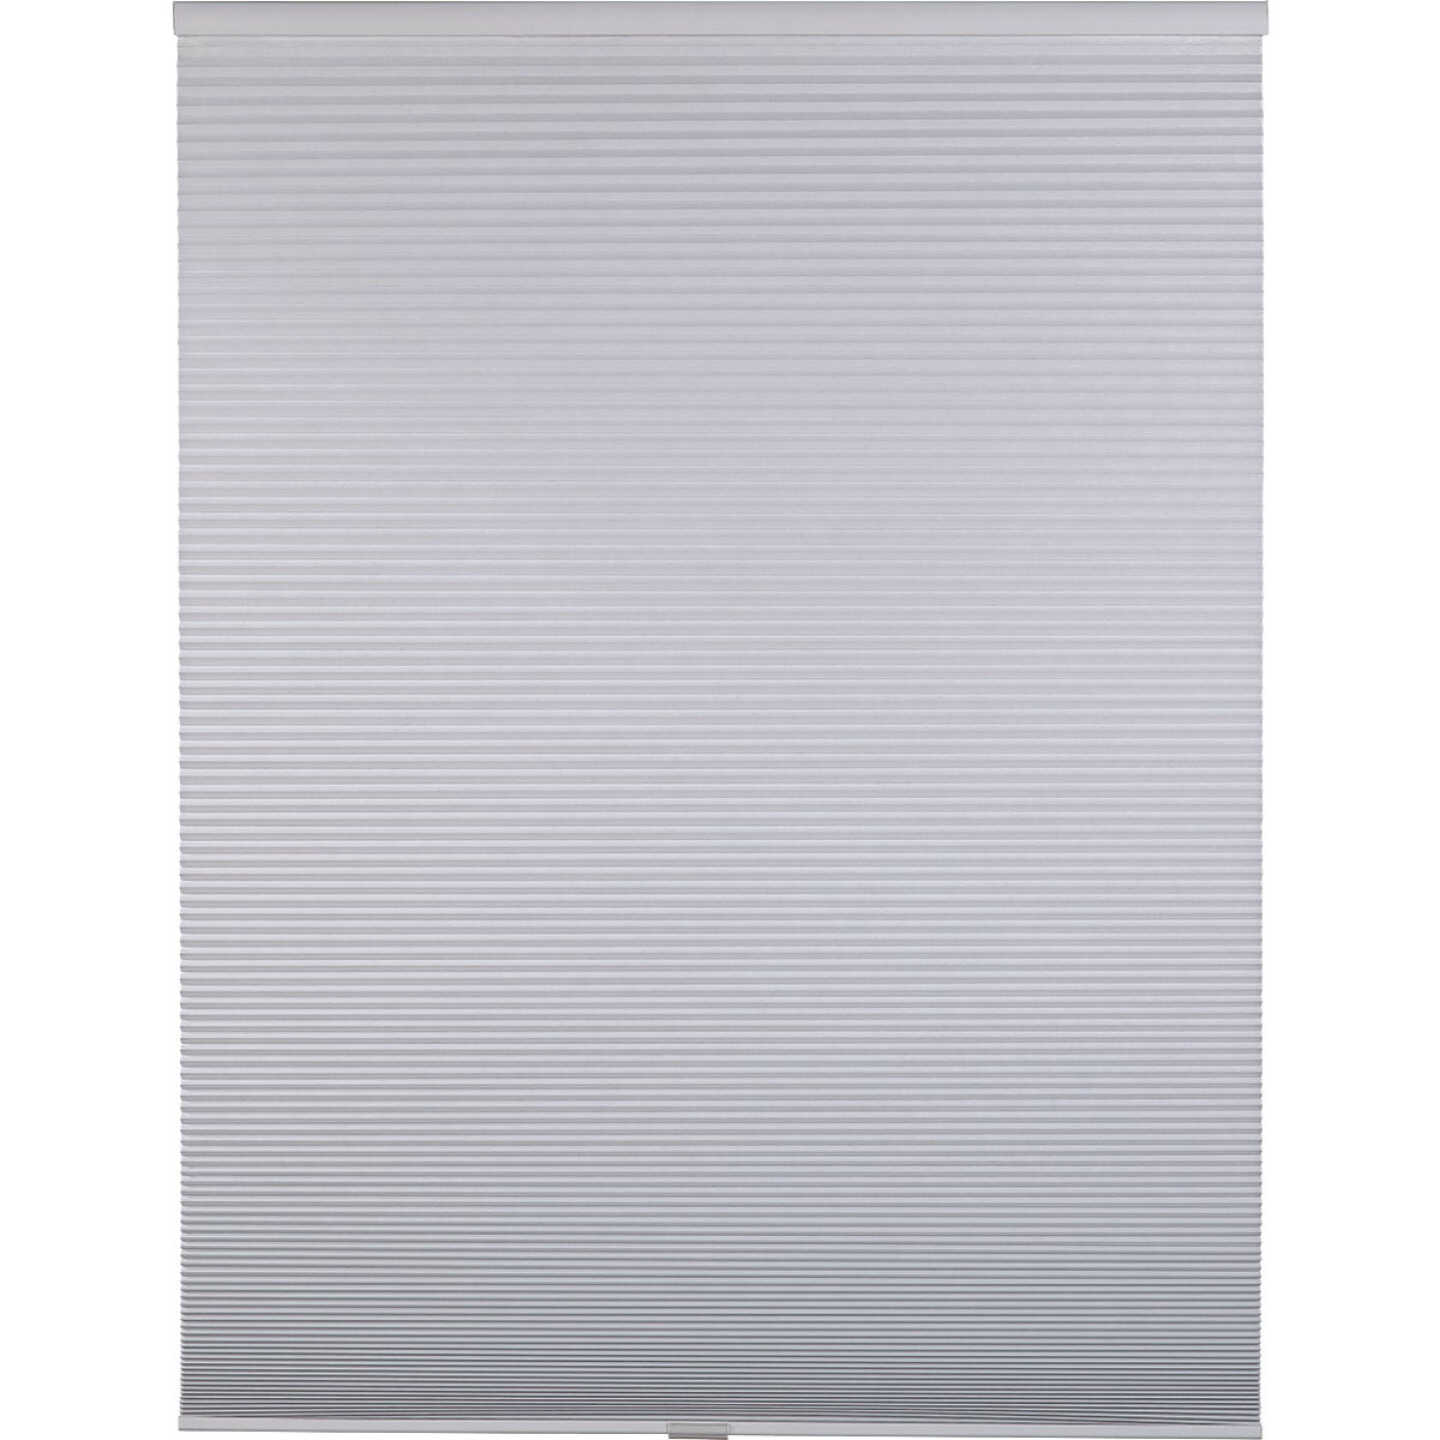 Home Impressions 1 In. Room Darkening Cellular White 35 In. x 72 In. Cordless Shade Image 1